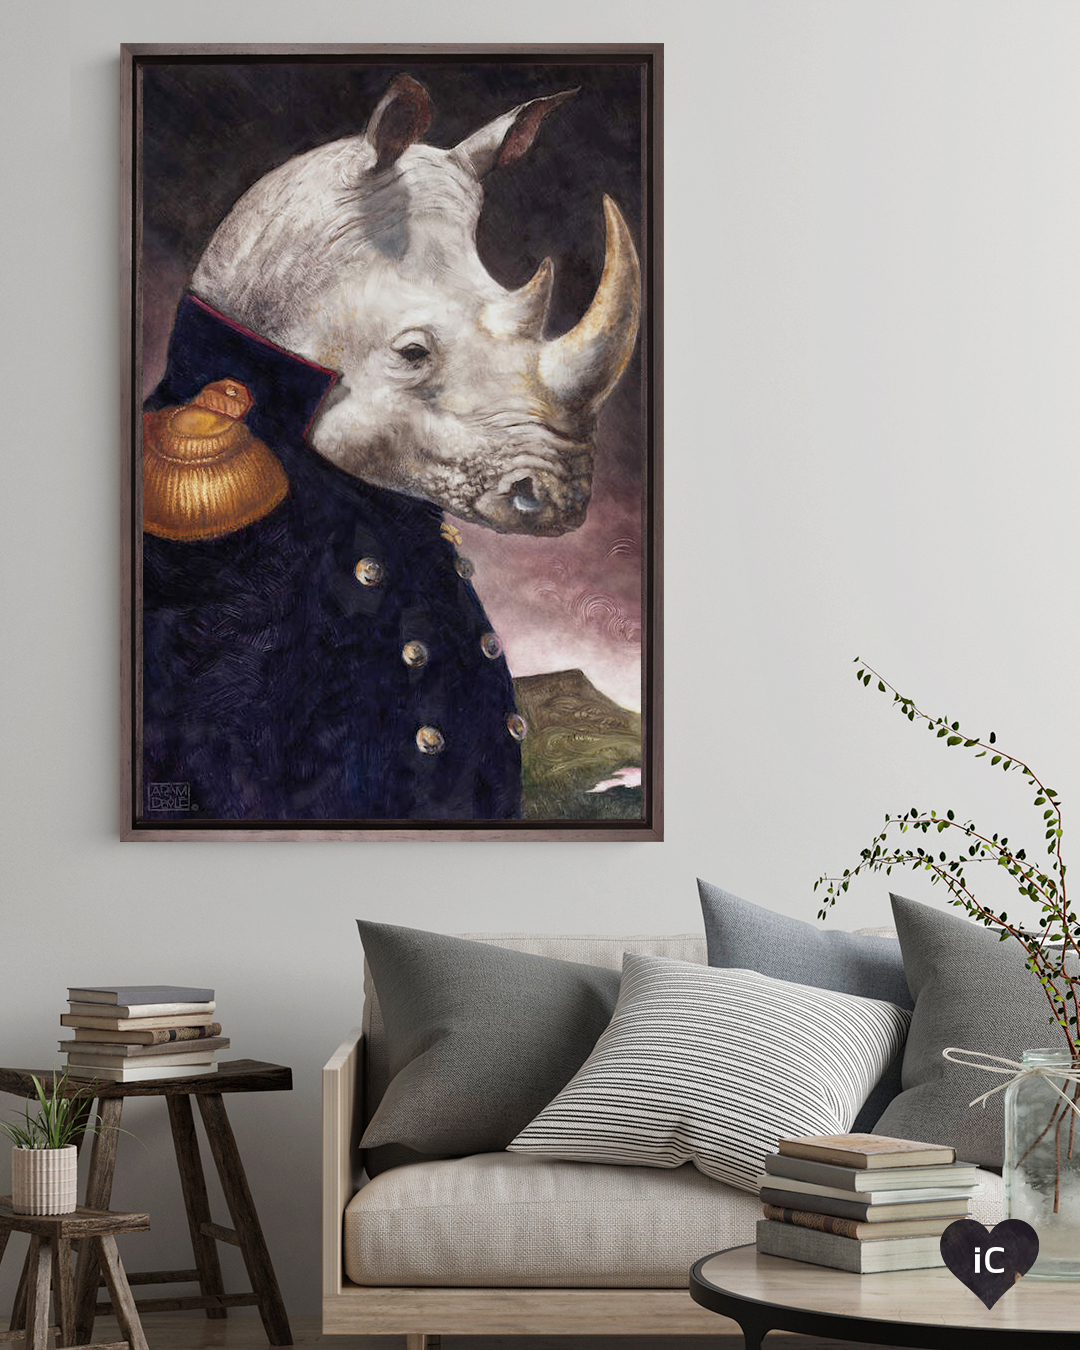 a portrait of a standing rhino wearing a general's jacket